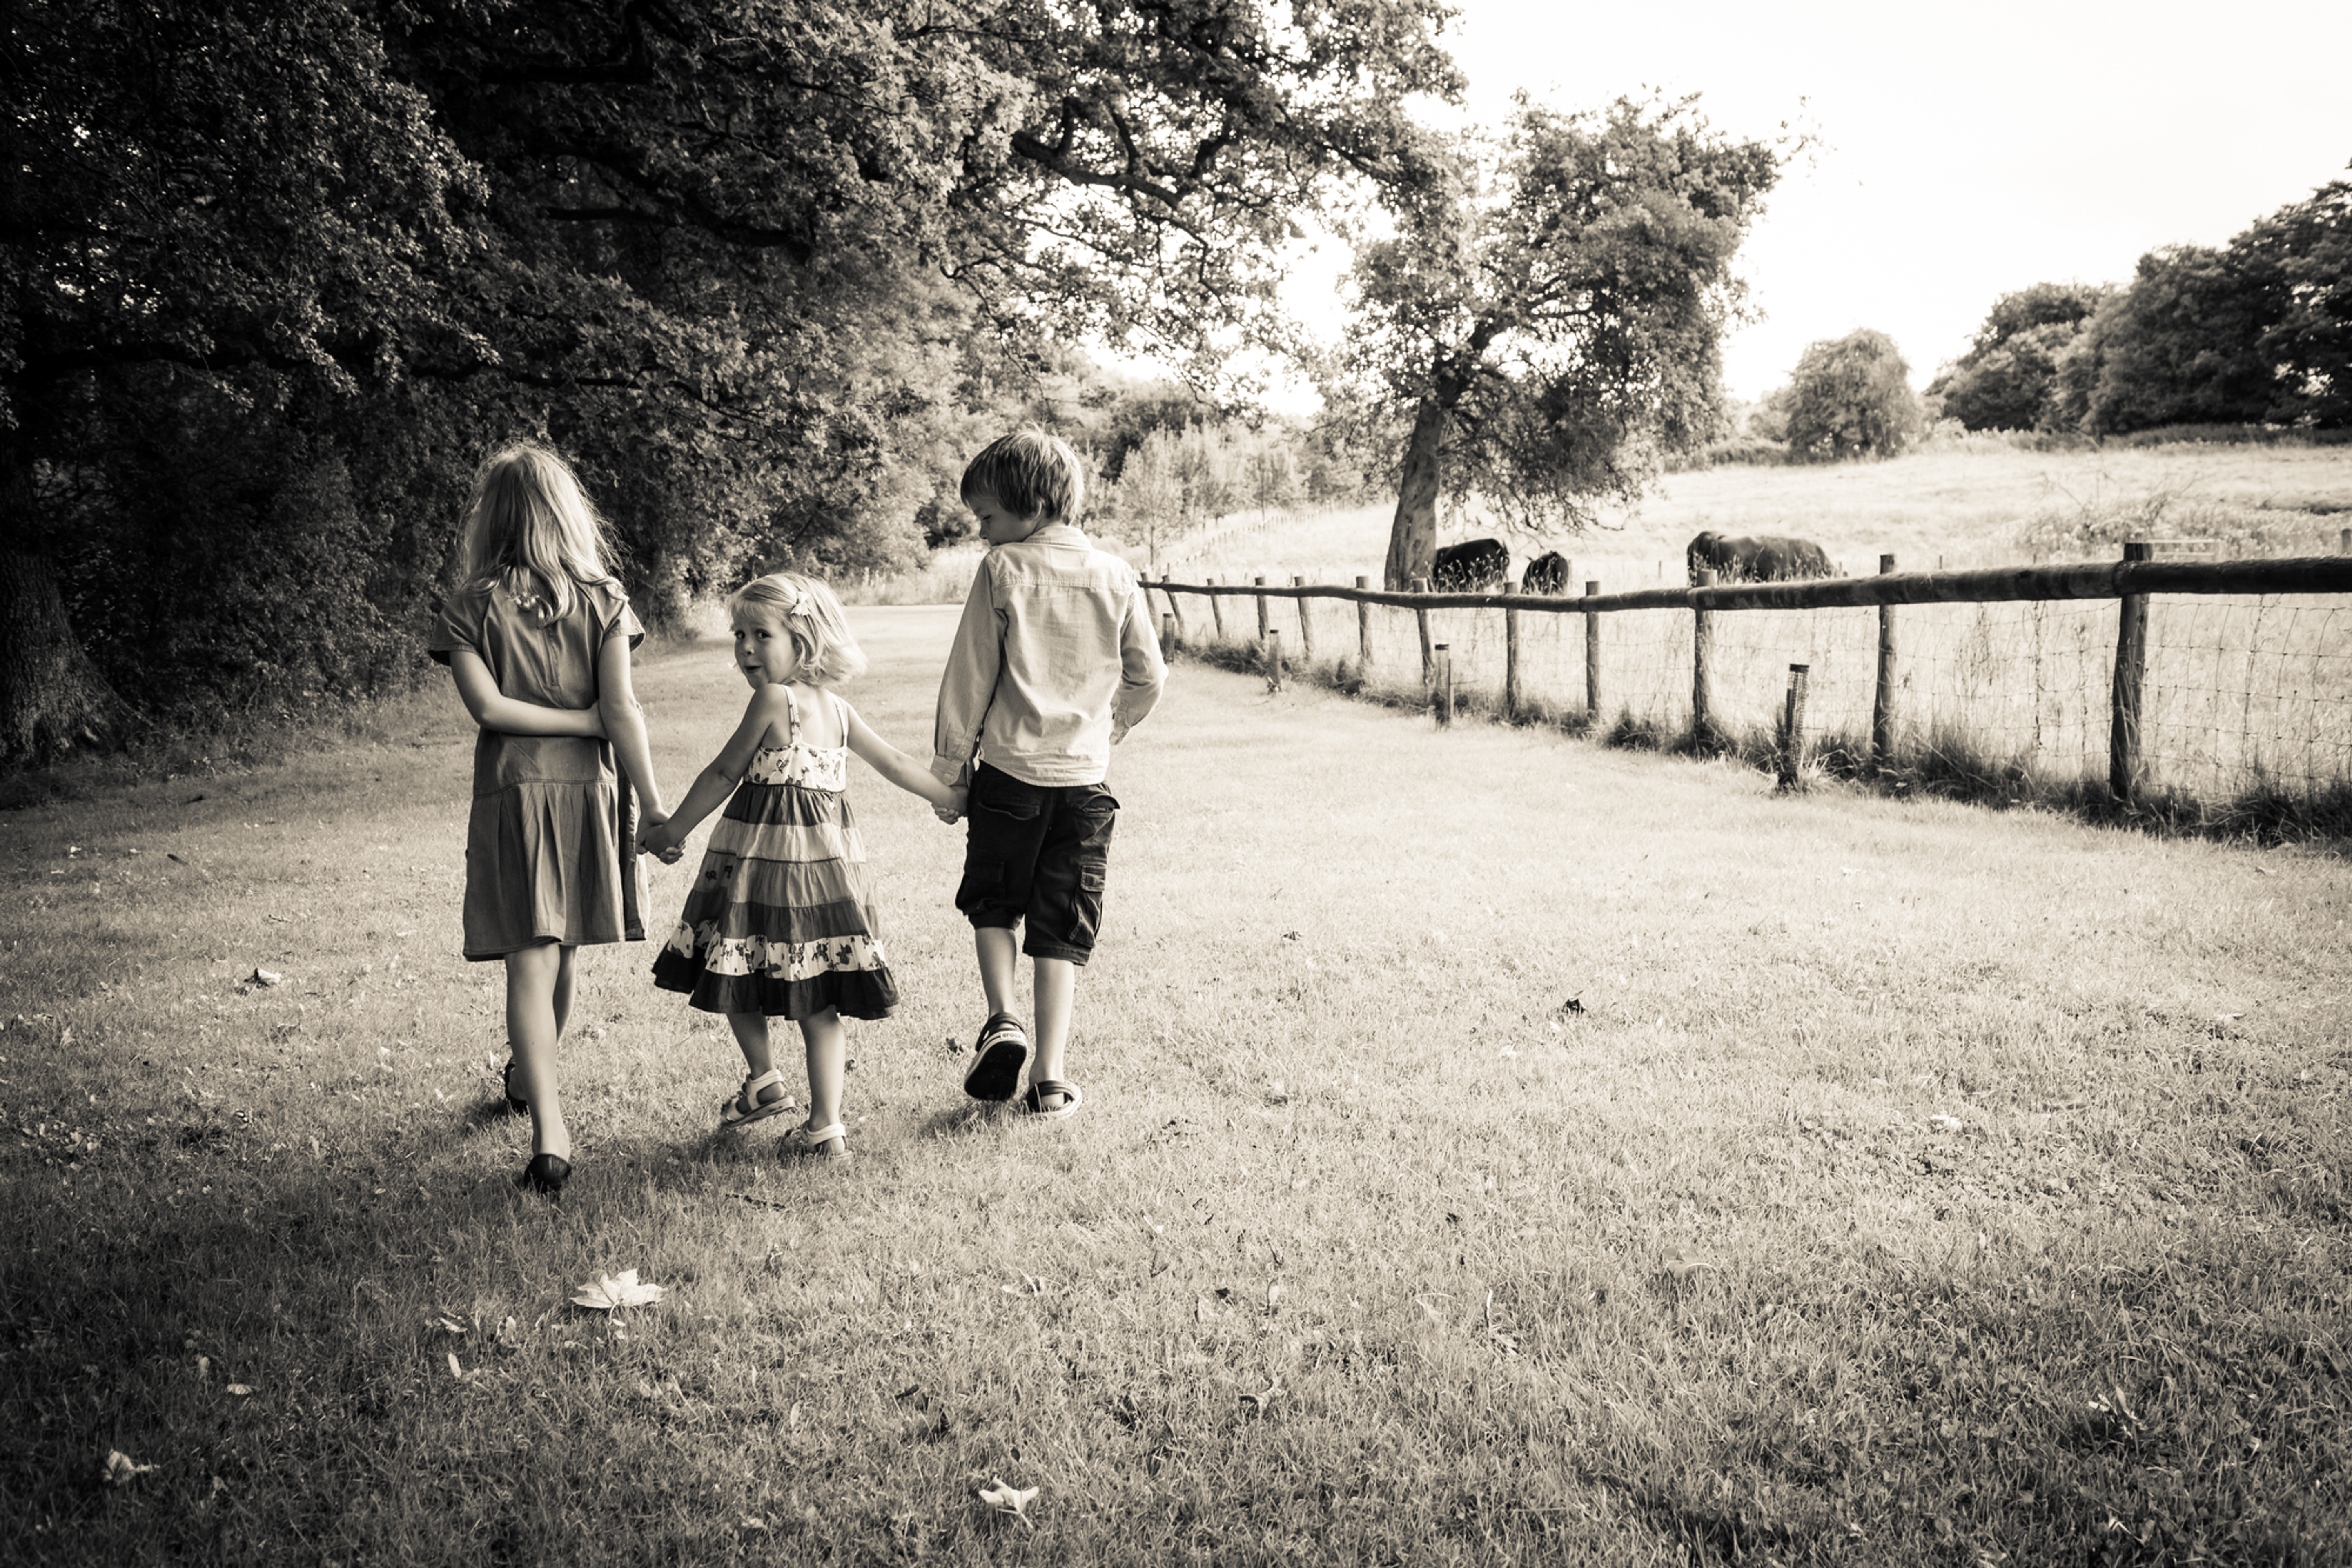 Family/Child Photography session